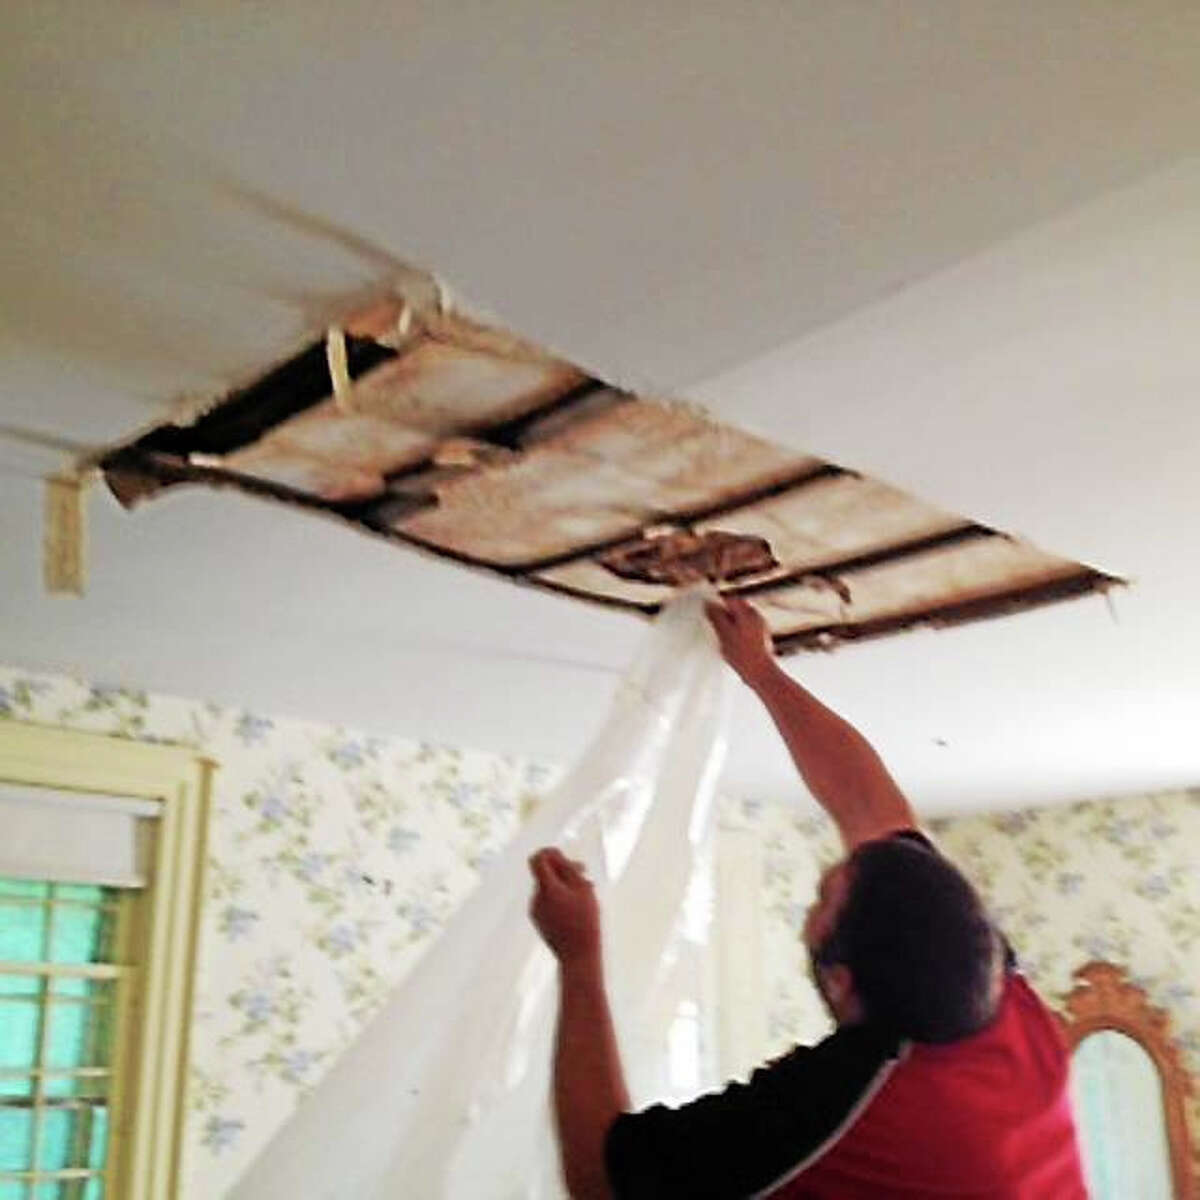 Staff and volunteers from the Shelton Historical Society worked Thursday to identify which artifacts needed repair after water from heavy storms got into the the Brownson House, which houses the Shelton History Center.